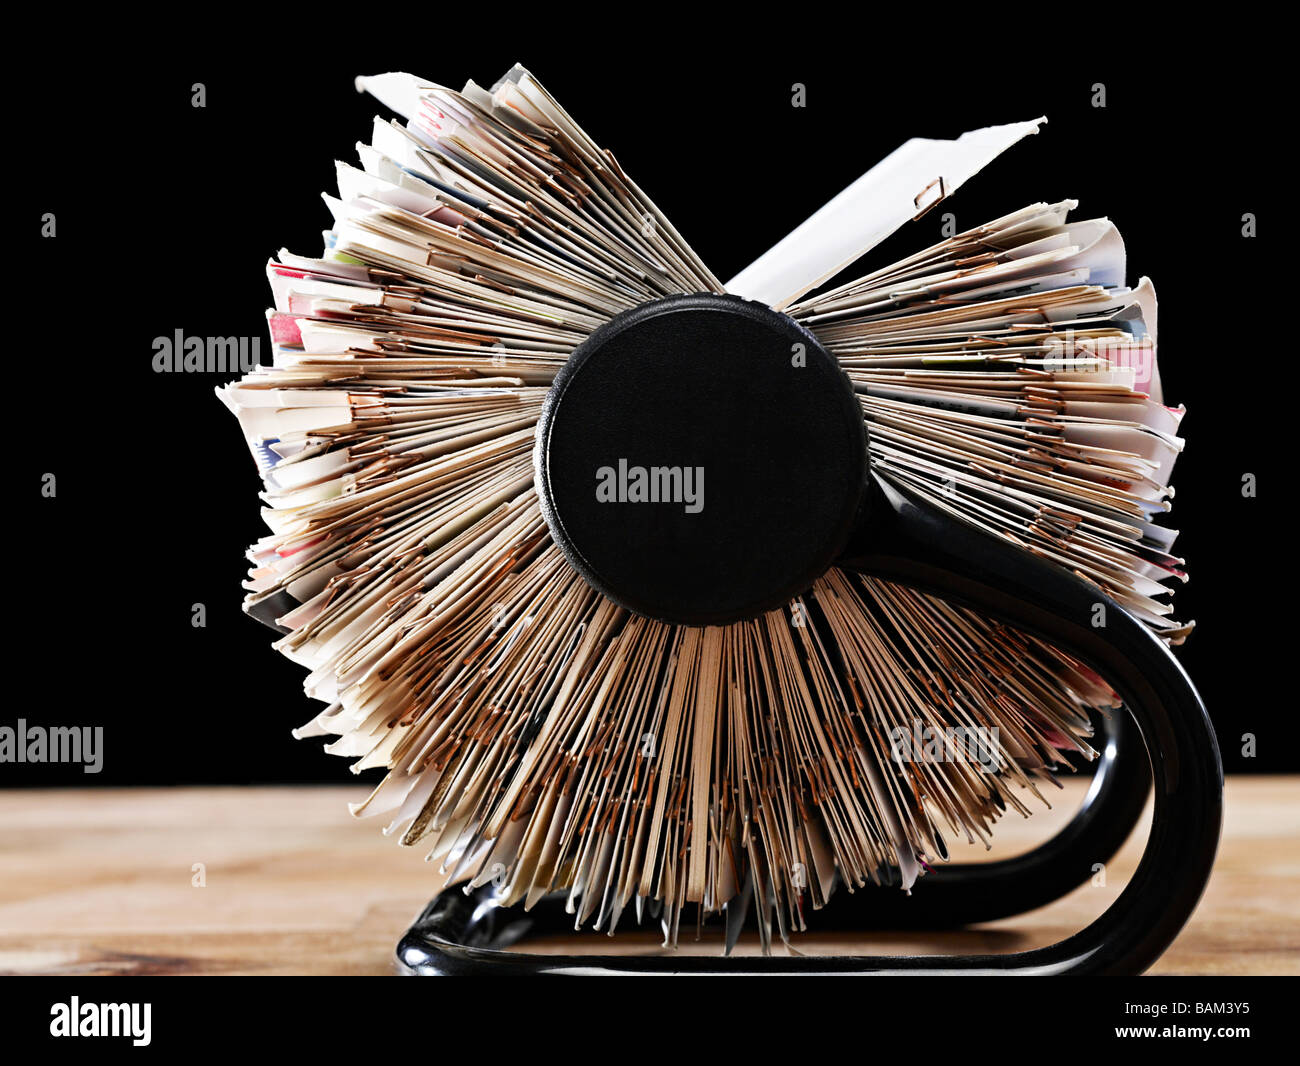 Rotary card file - Stock Image